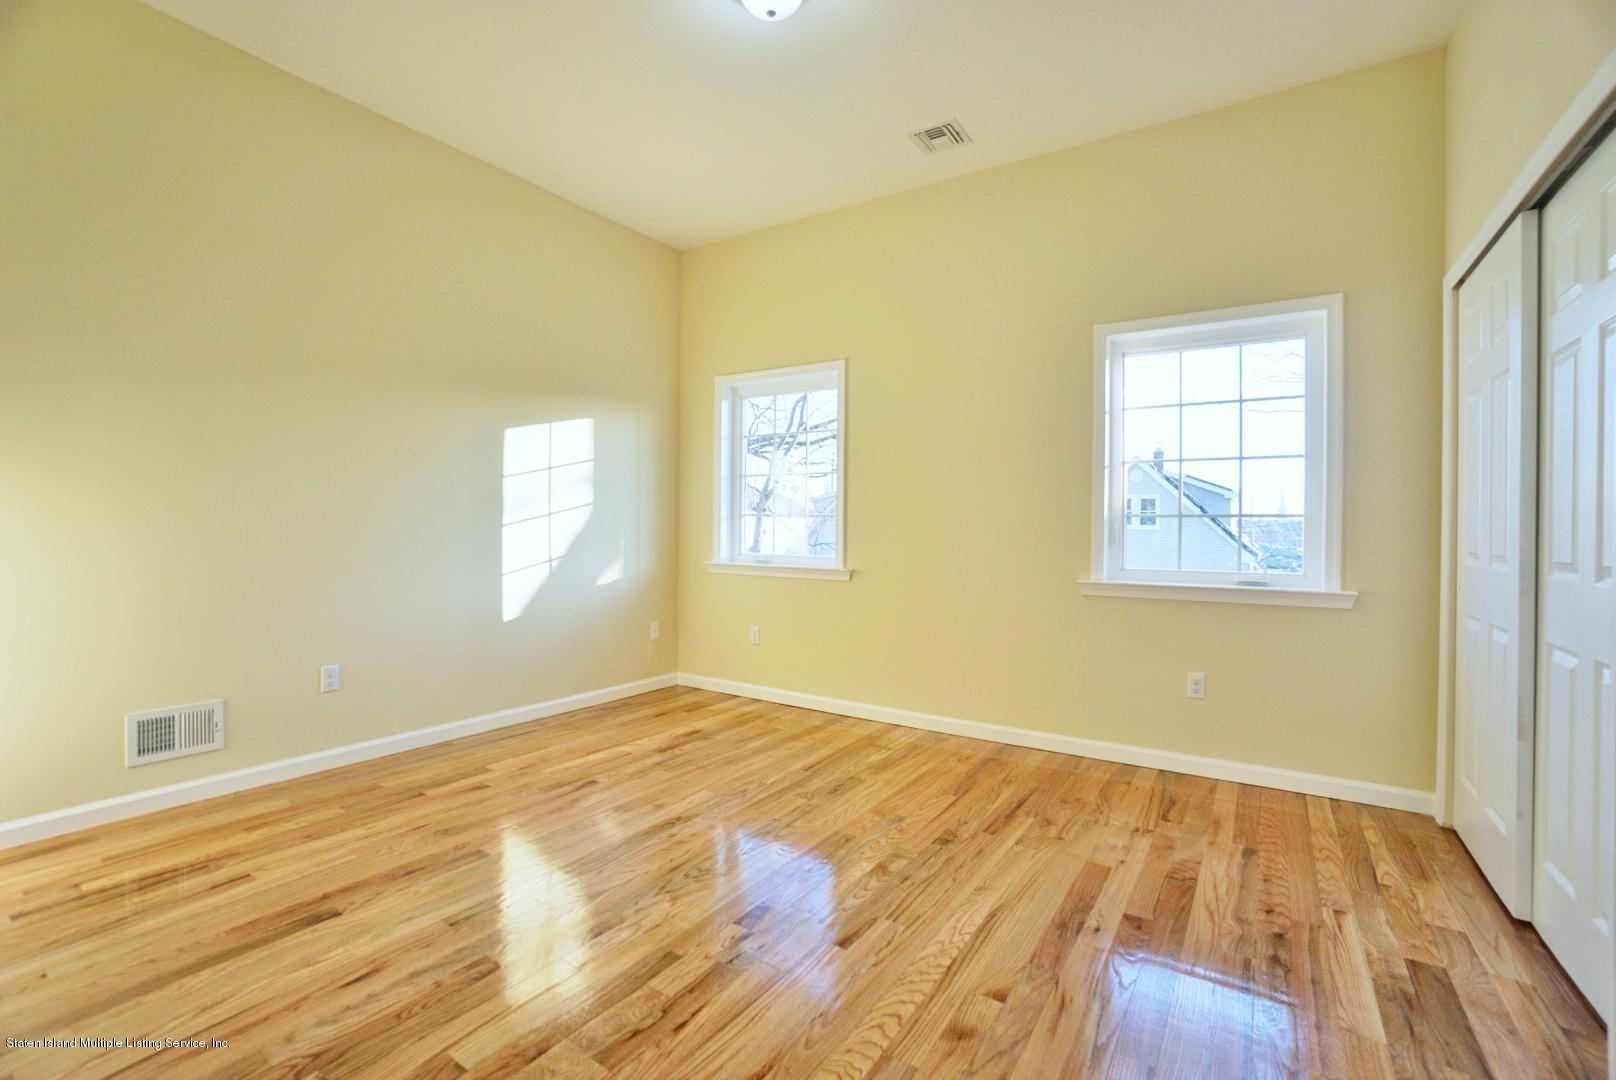 Single Family - Attached 34 Bamberger Lane  Staten Island, NY 10312, MLS-1135521-13